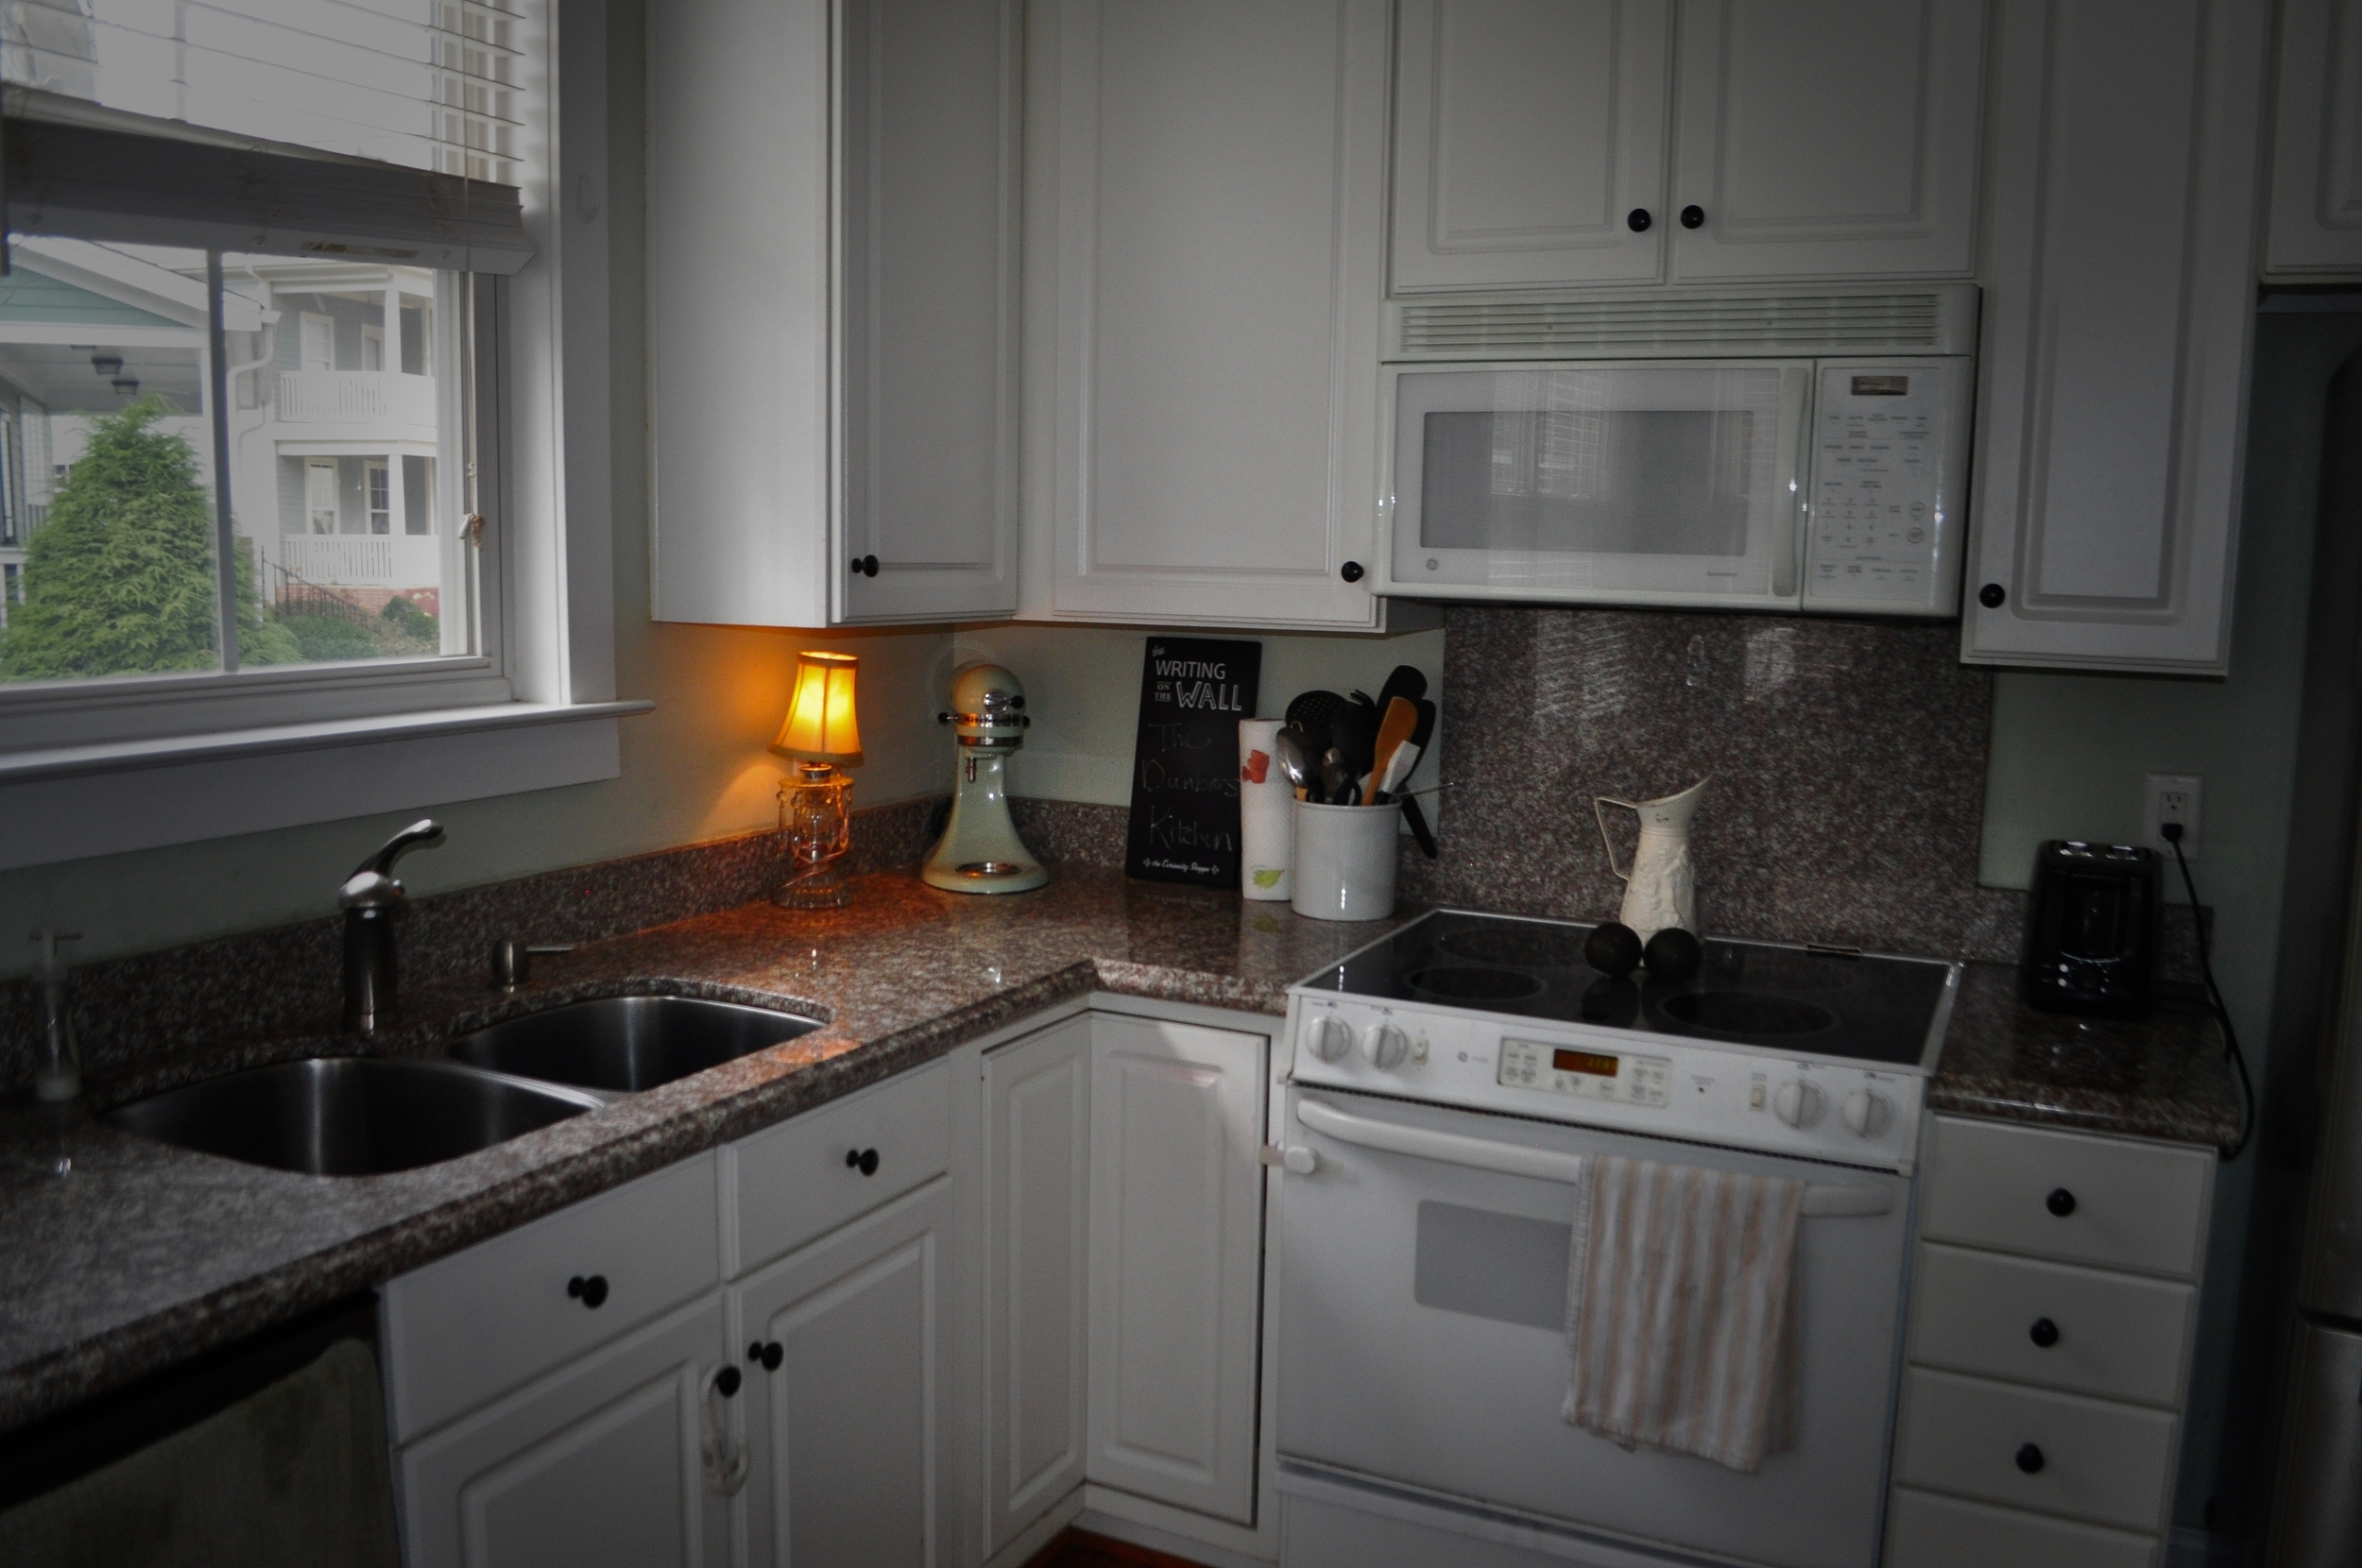 backsplash pic 1.jpg